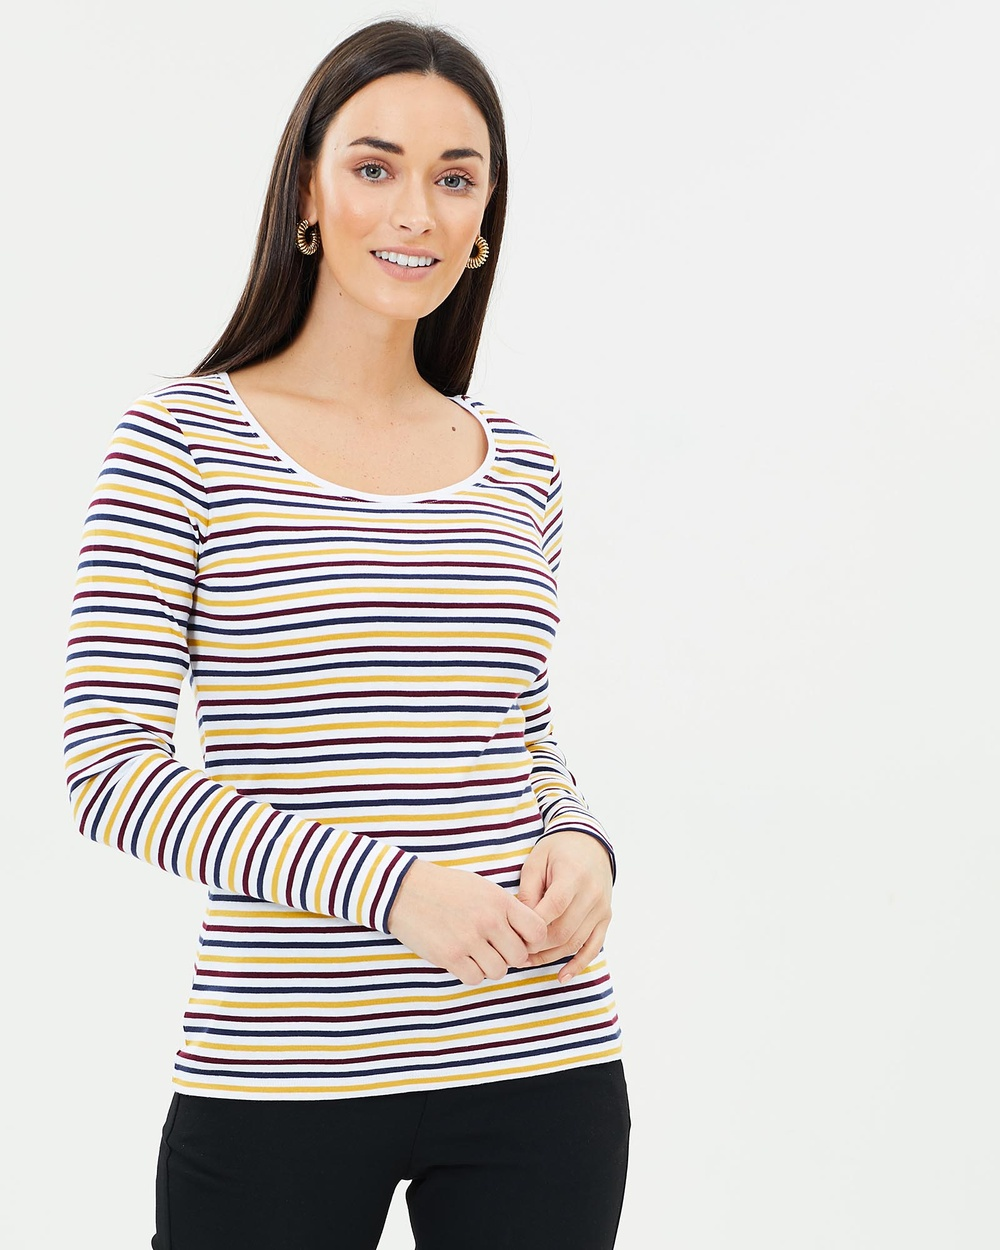 Sportscraft Heidi Long Sleeve Stripe Tee Tops Mustard & Multi Heidi Long Sleeve Stripe Tee